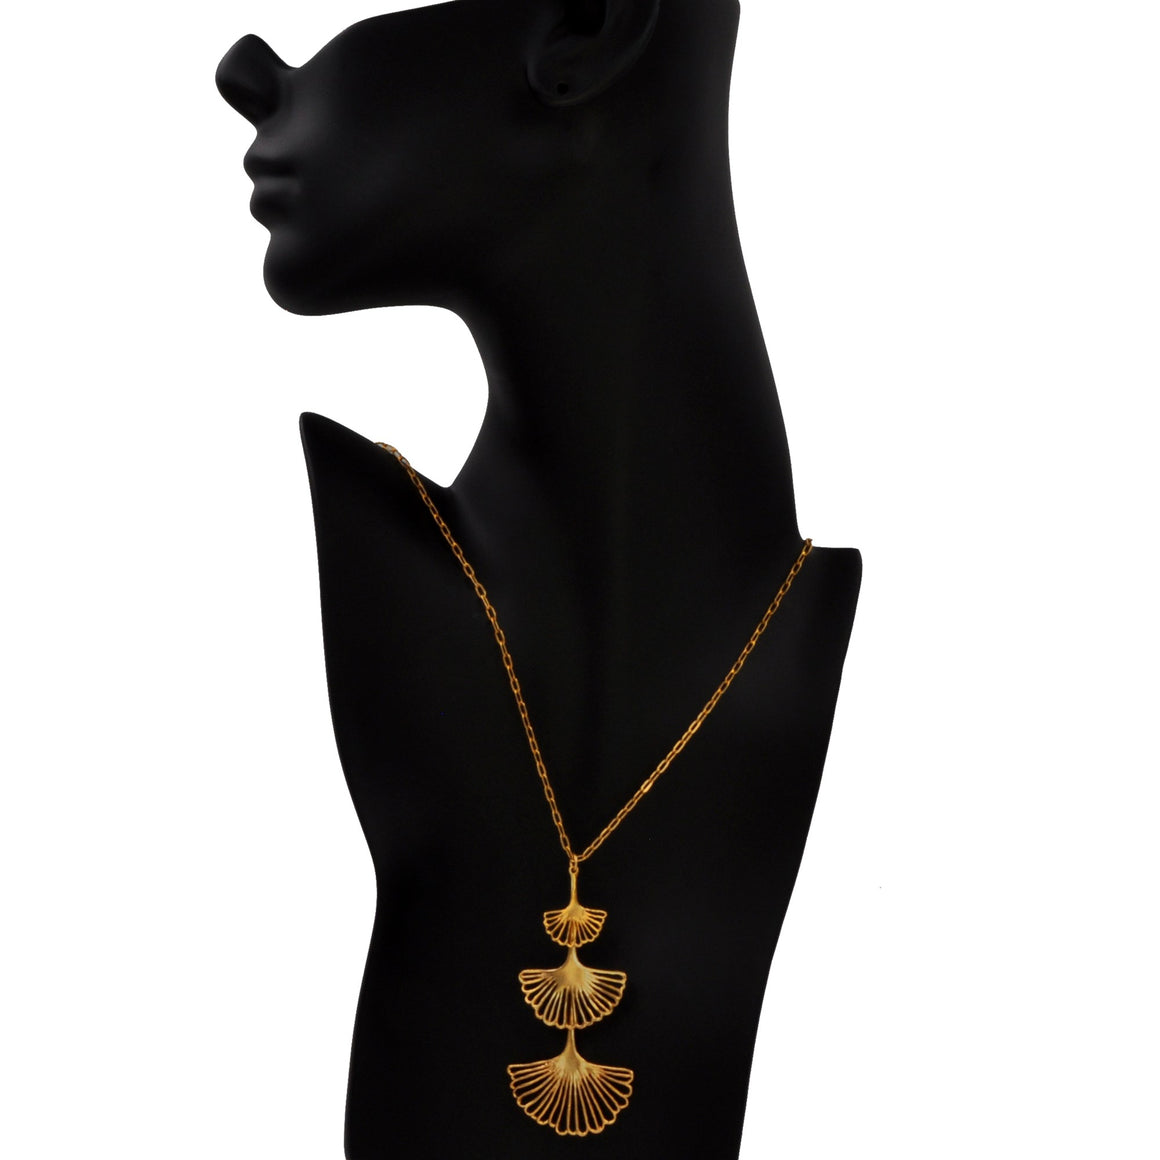 Ginkgo Triple Tier Pendant - 24K Gold Plated